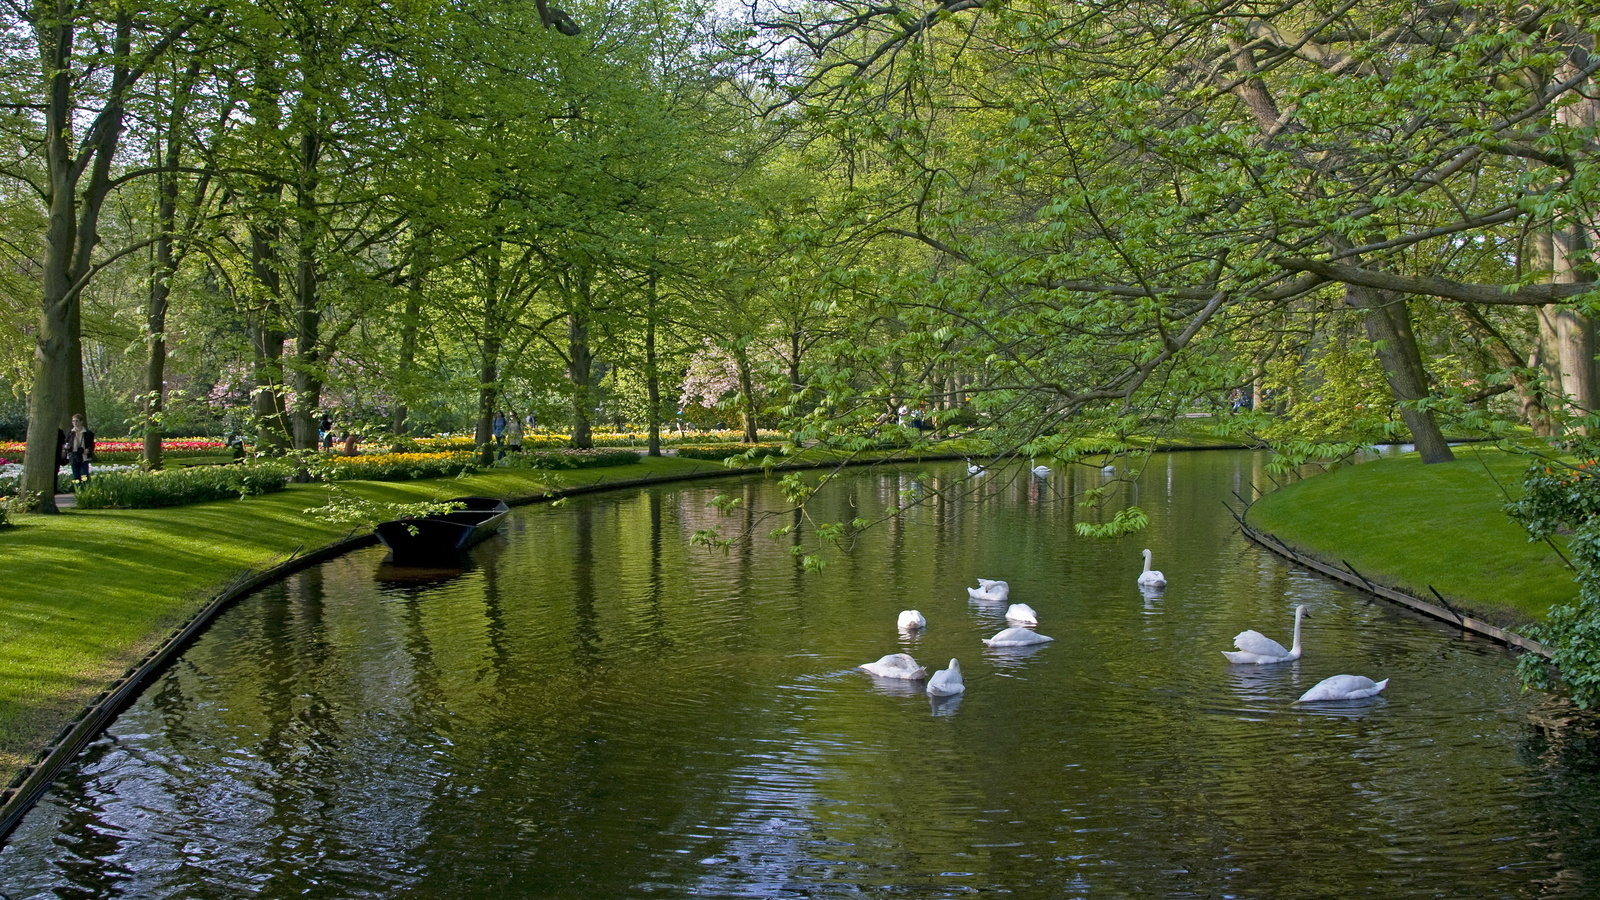 22358 download wallpaper Animals, Landscape, Birds, Rivers, Trees, Swans, Boats screensavers and pictures for free